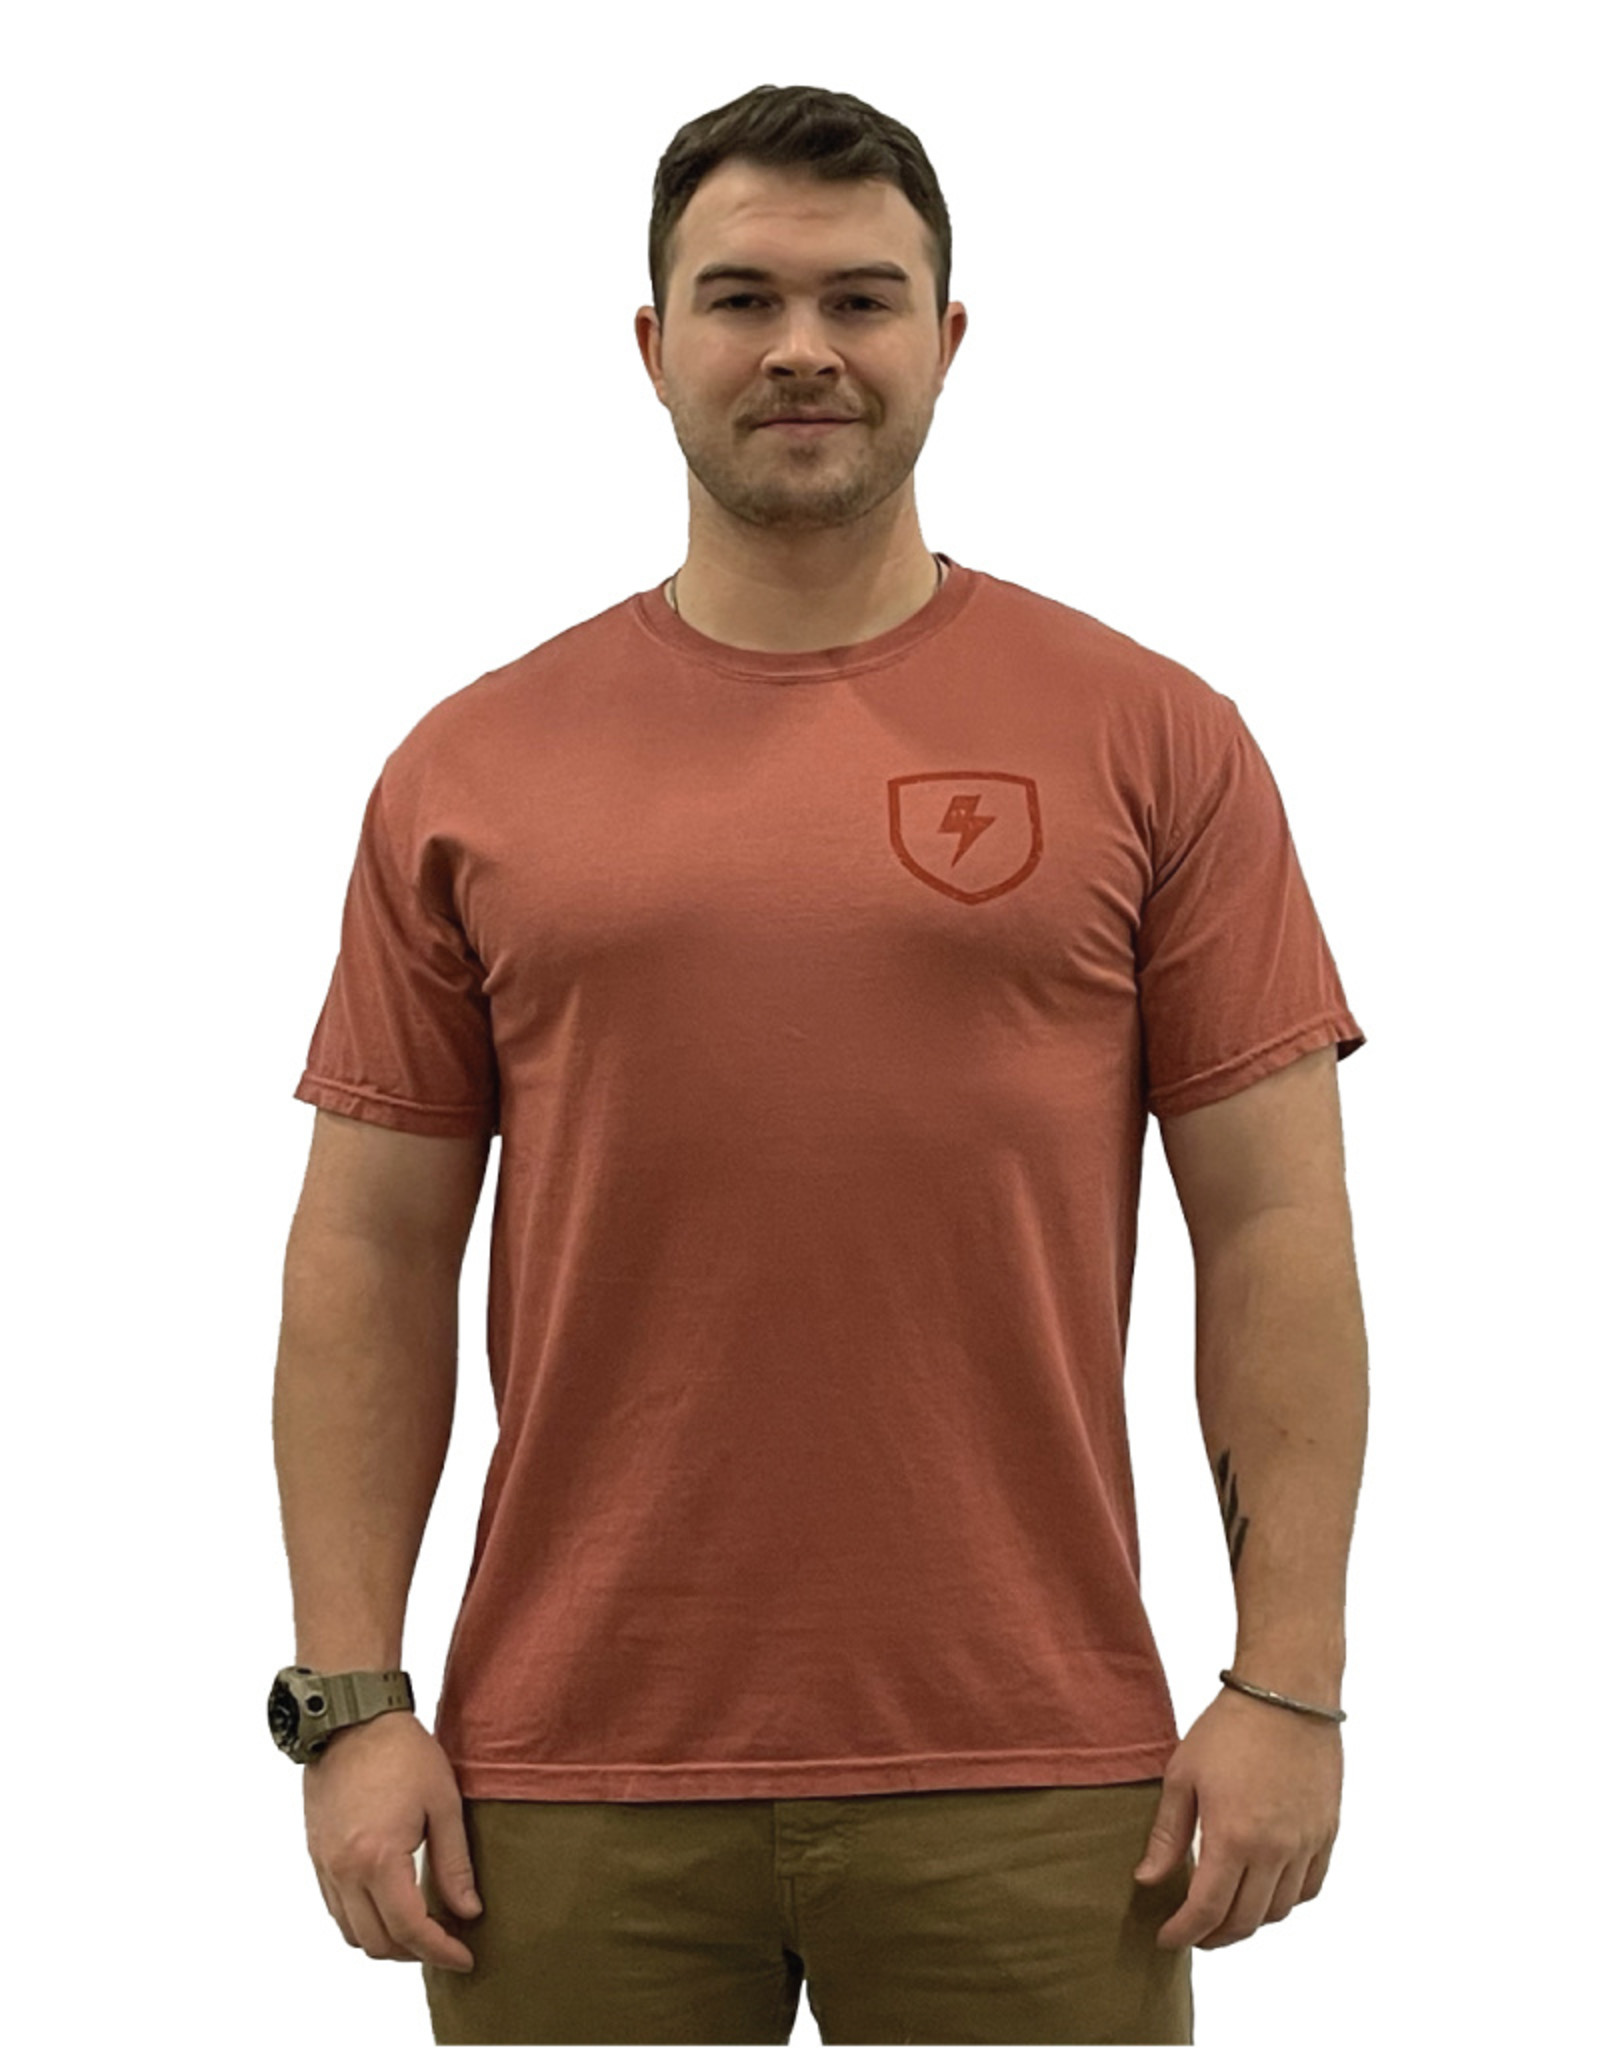 Defender Outdoors Est. 2013 X T-Shirt